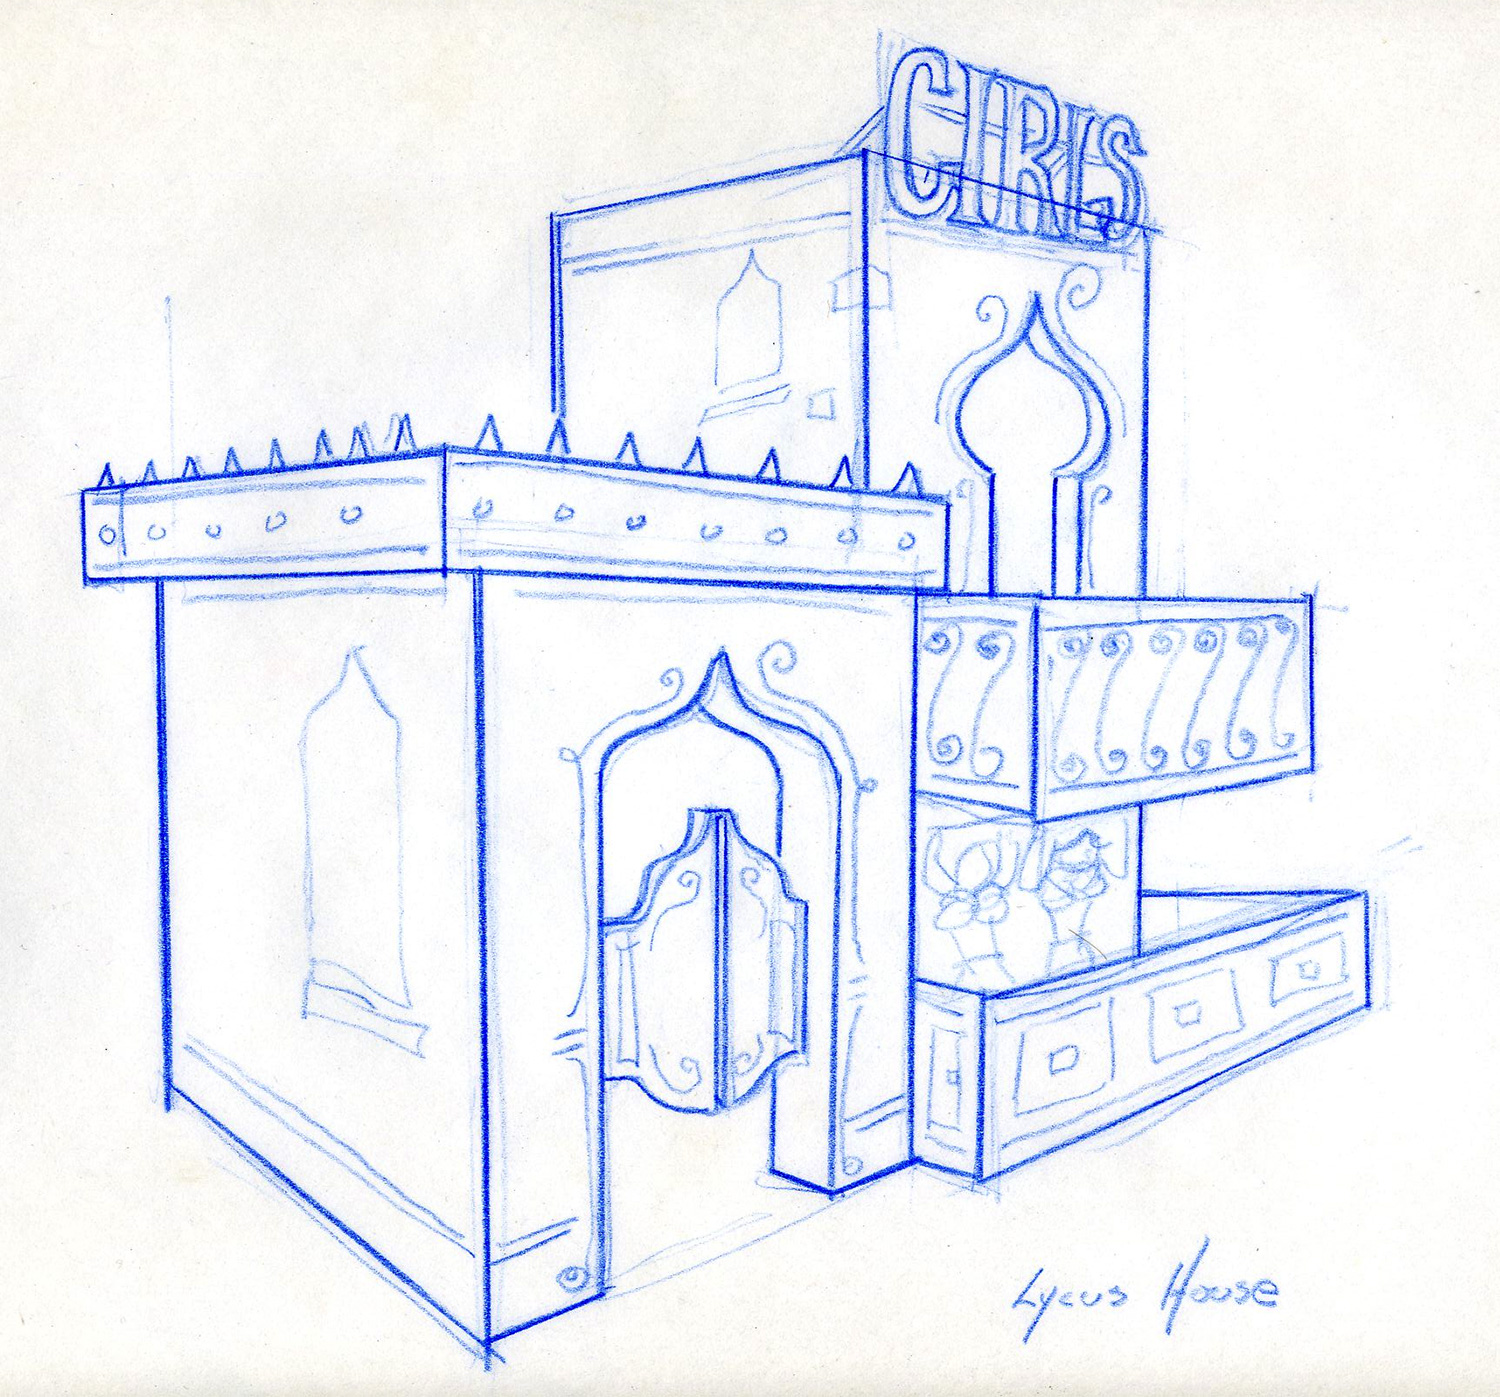 """Preliminary sketch for Lycus' House for a thetarical production of """"A Funny Thing Happened on the way to the Forum""""."""